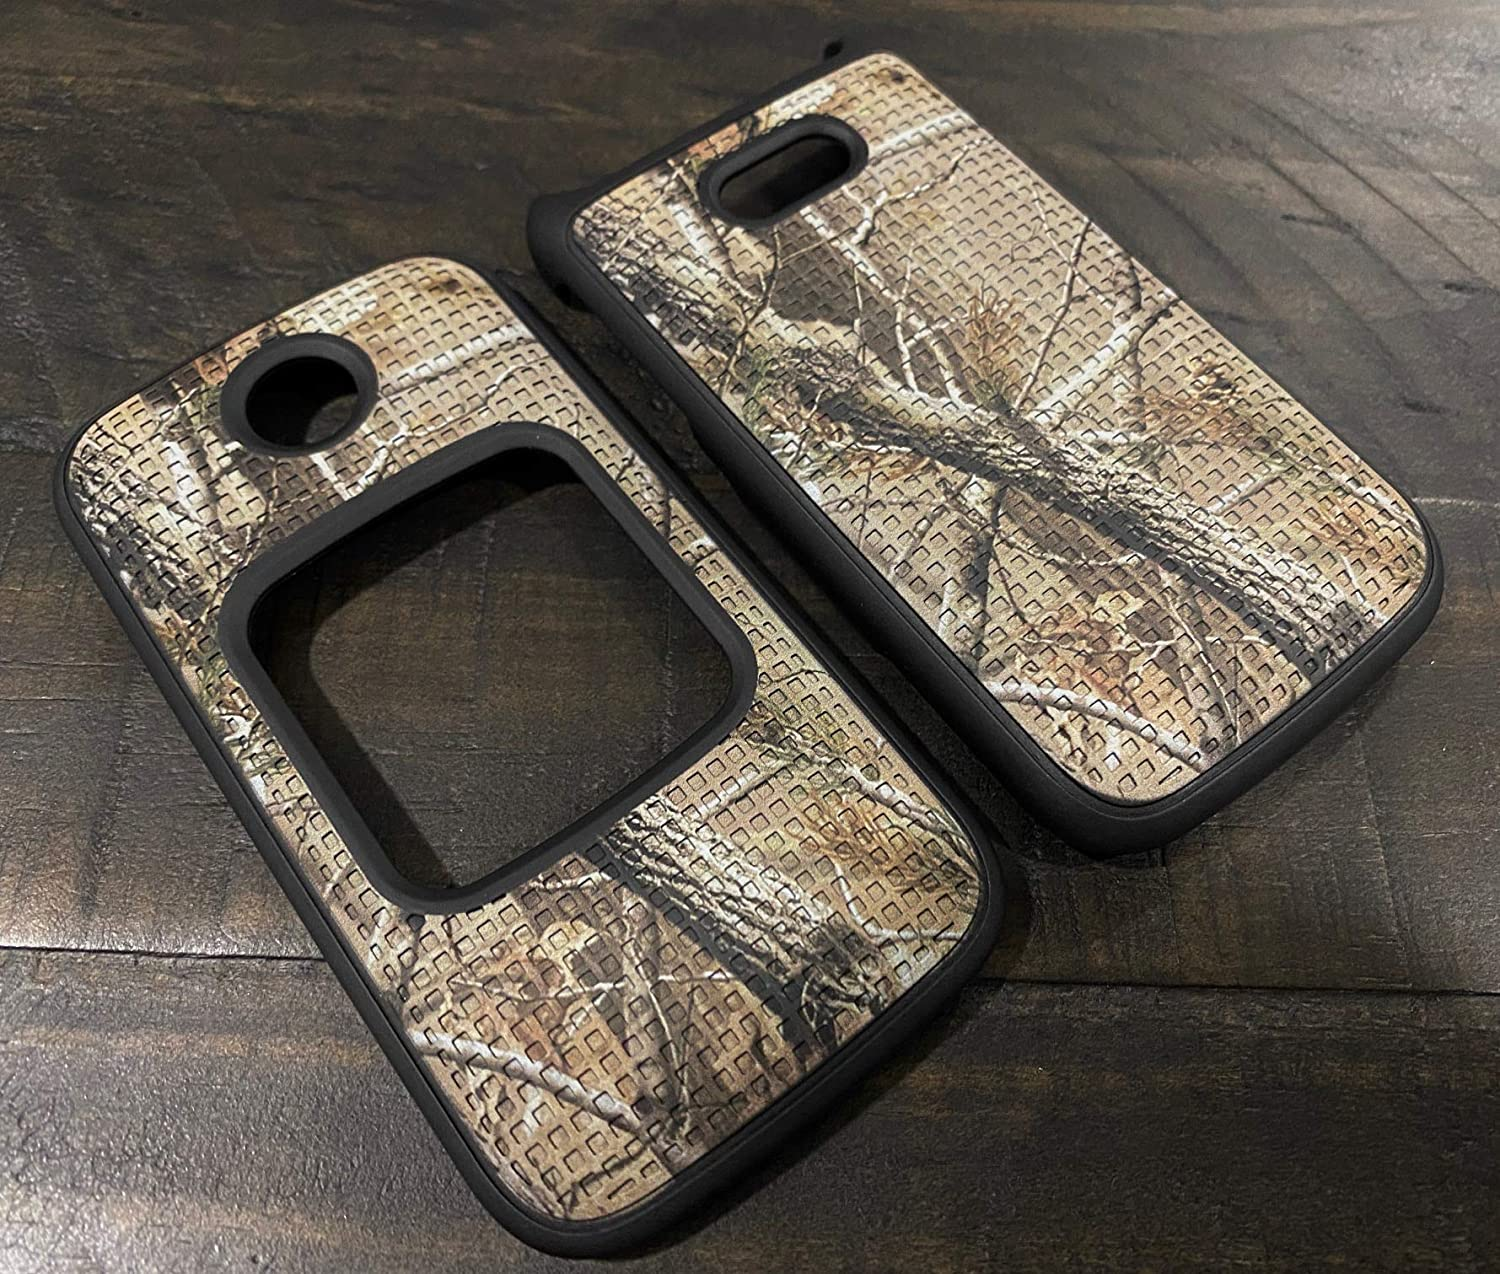 Case for Alcatel Smartflip/Go Flip 3, Nakedcellphone [Outdoor Camouflage] Tree Leaf Real Woods Camo Protective Snap-On Cover for Alcatel Go Flip 3, Alcatel Smartflip Phone (2019) 4052R/4052C/4052W